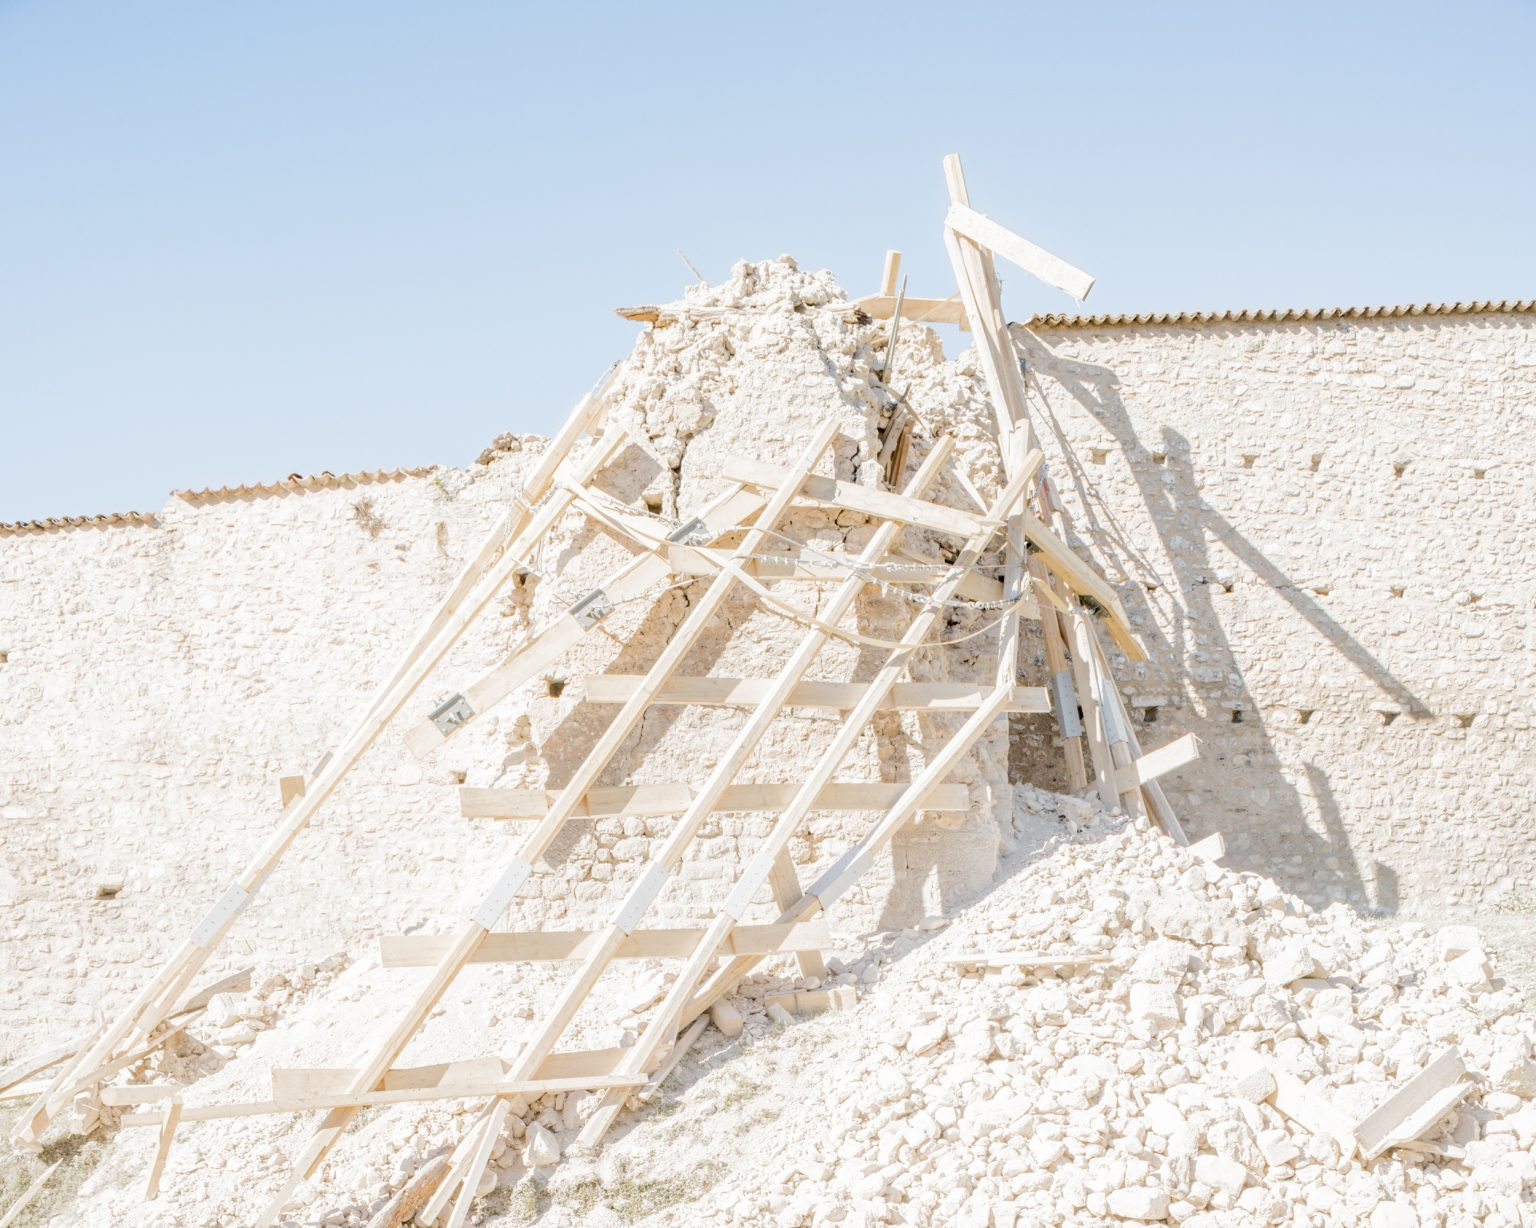 Norcia (Perugia), 30 October 2016. The provisional structure shoring up one of the bastions of the town walls, installed after the earthquakes of 26 October, collapsed after the earthquakes of 30 October. Norcia, Perugia, Italy 2016.